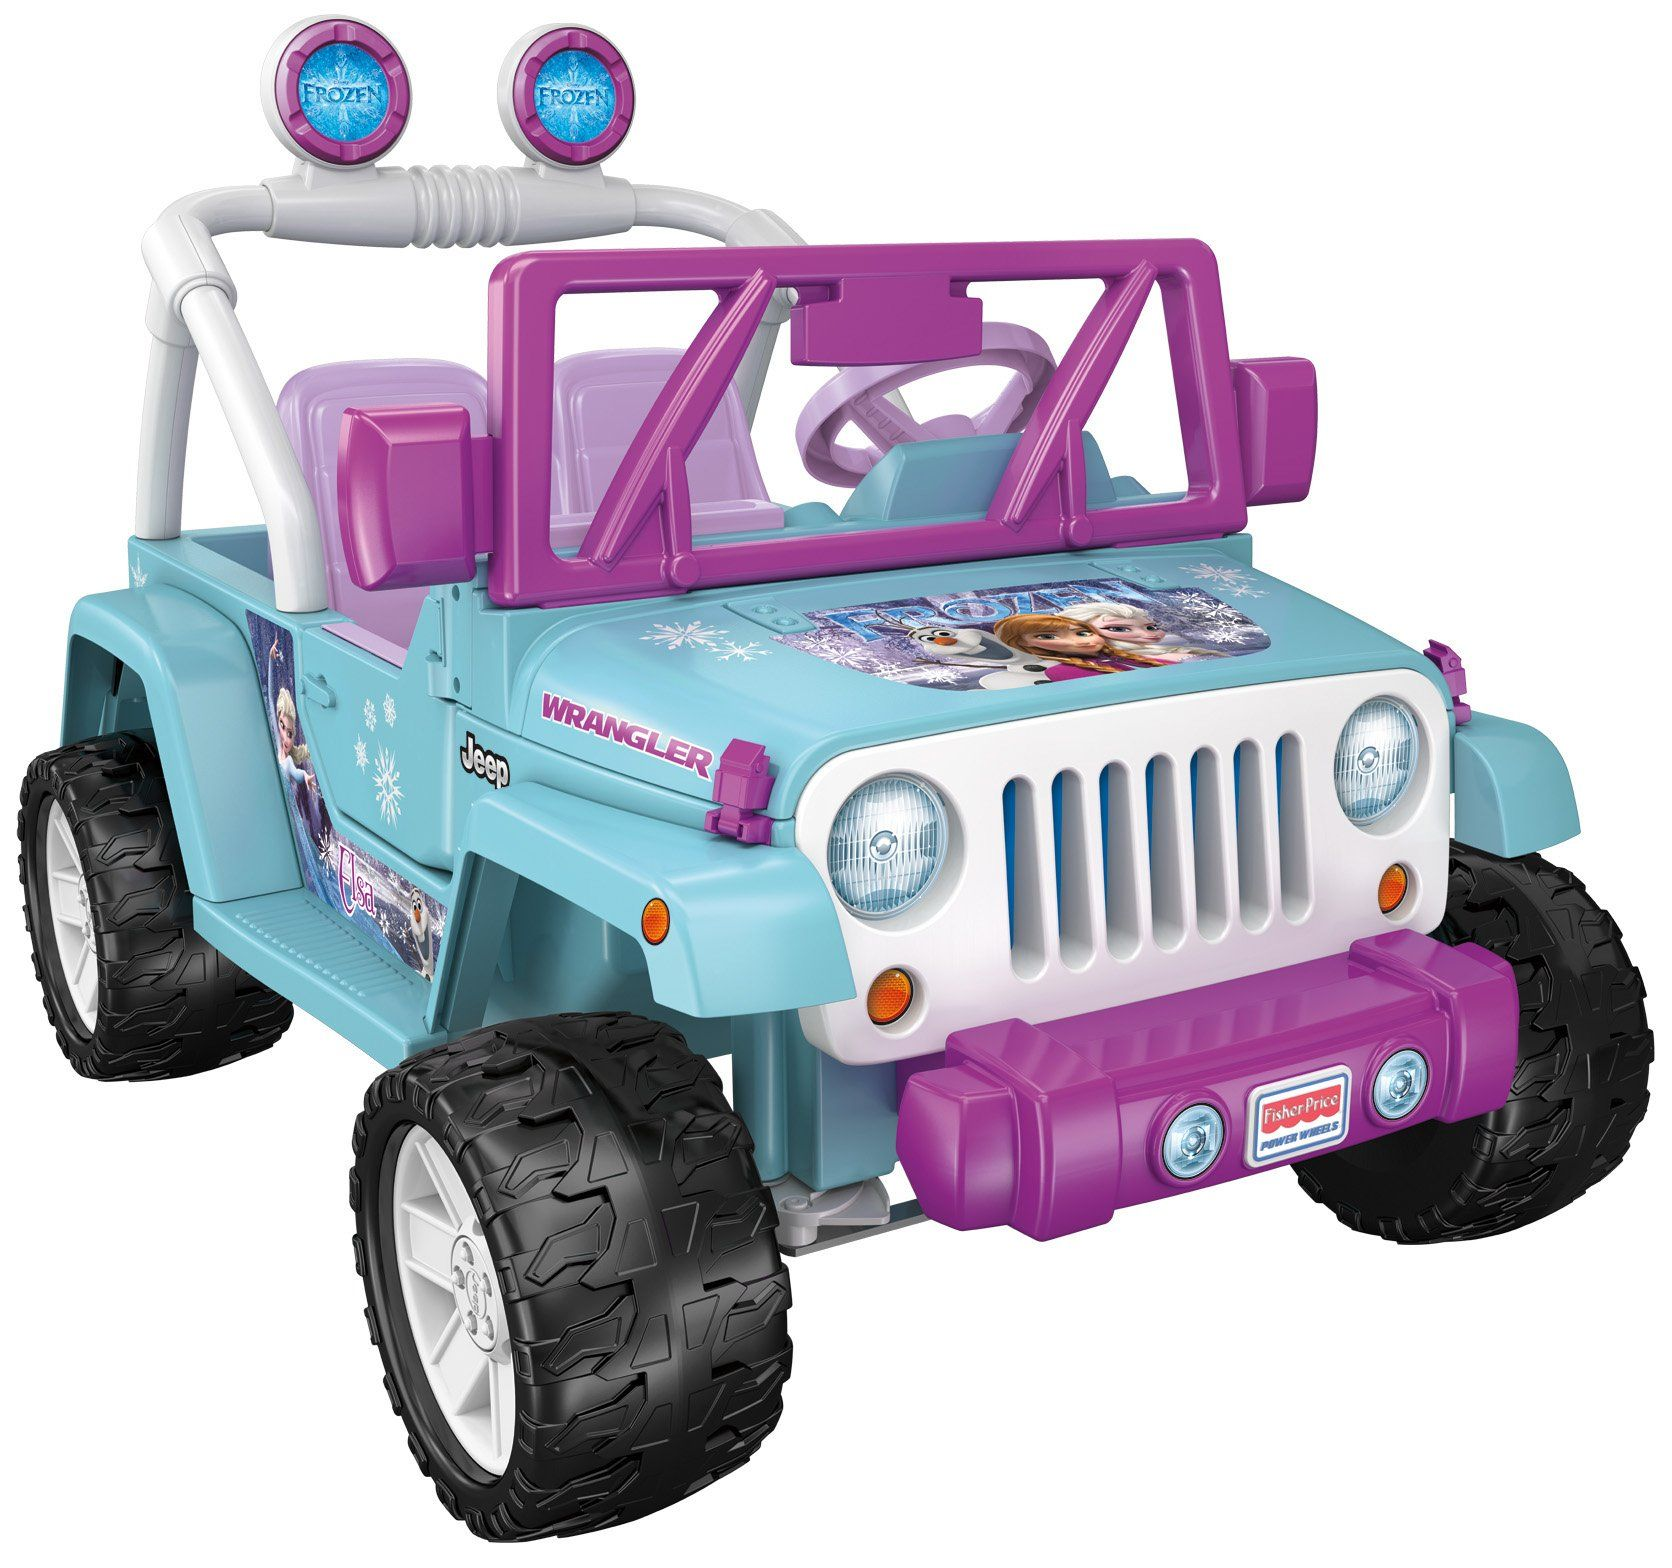 Fisher Price Disney Frozen Jeep Wrangler Ride On Power Wheels Ride On Toys Frozen Toys